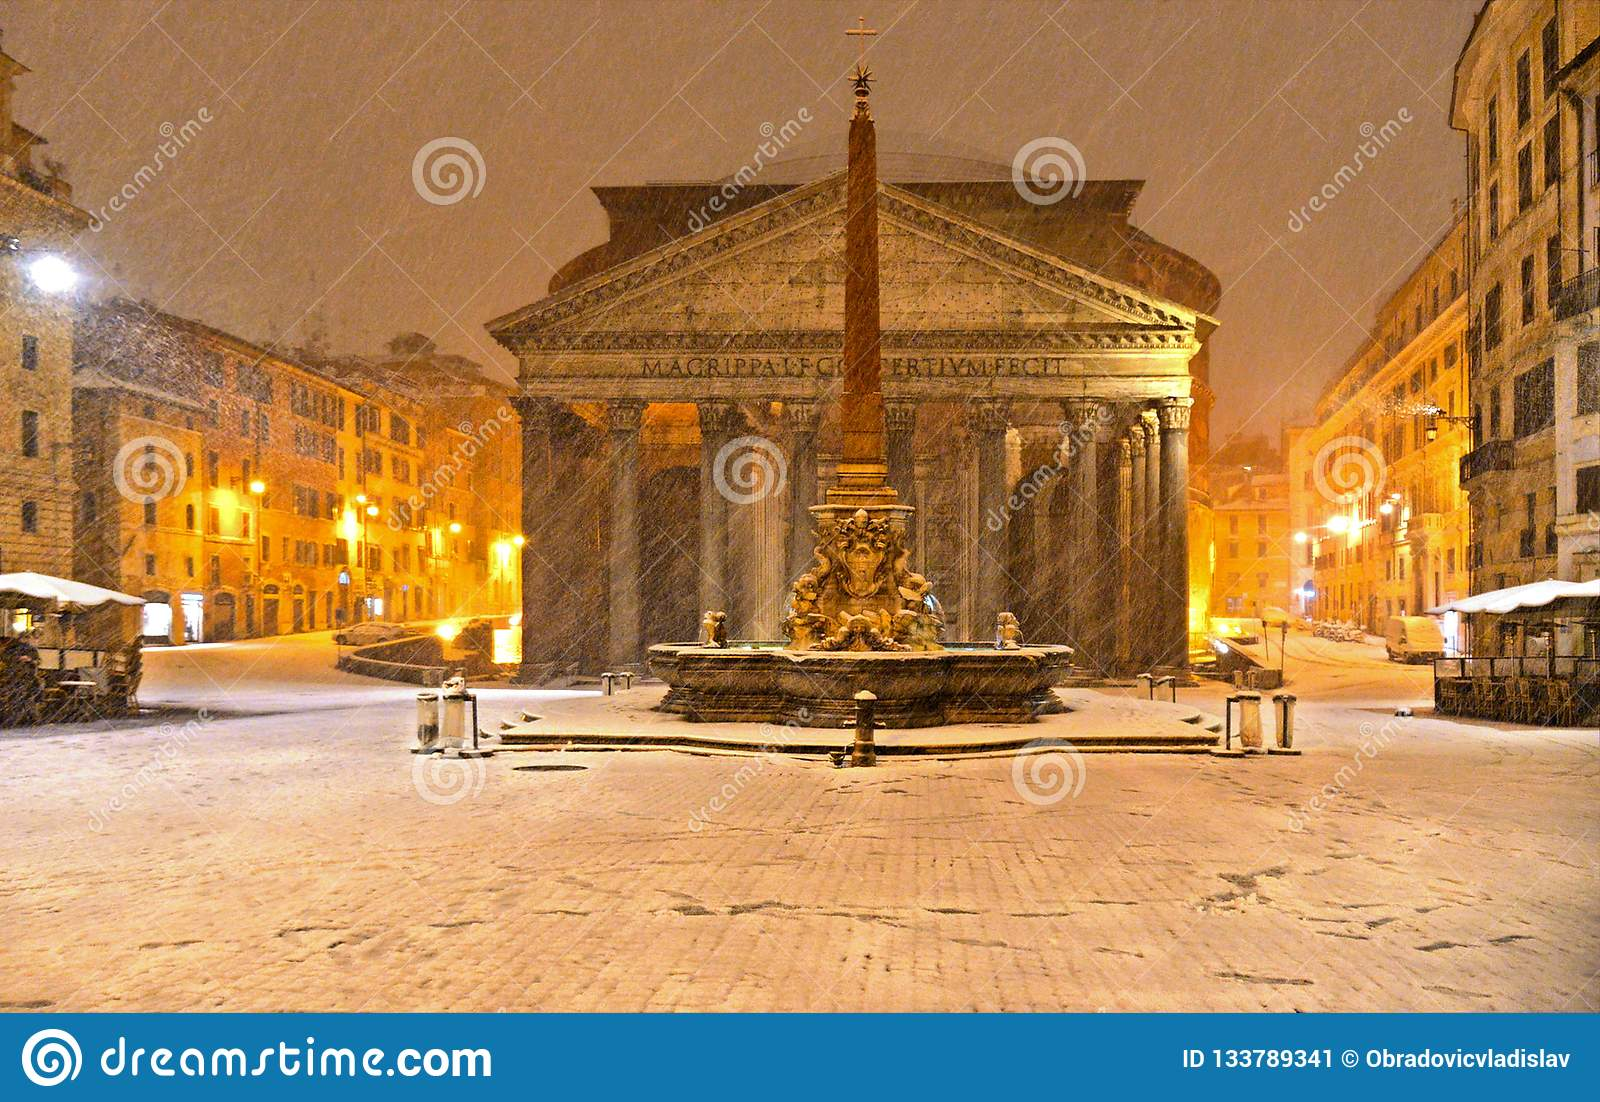 Winter night in Rome with snow blizzard and Pantheon temple church in empty square with golden light , Italy